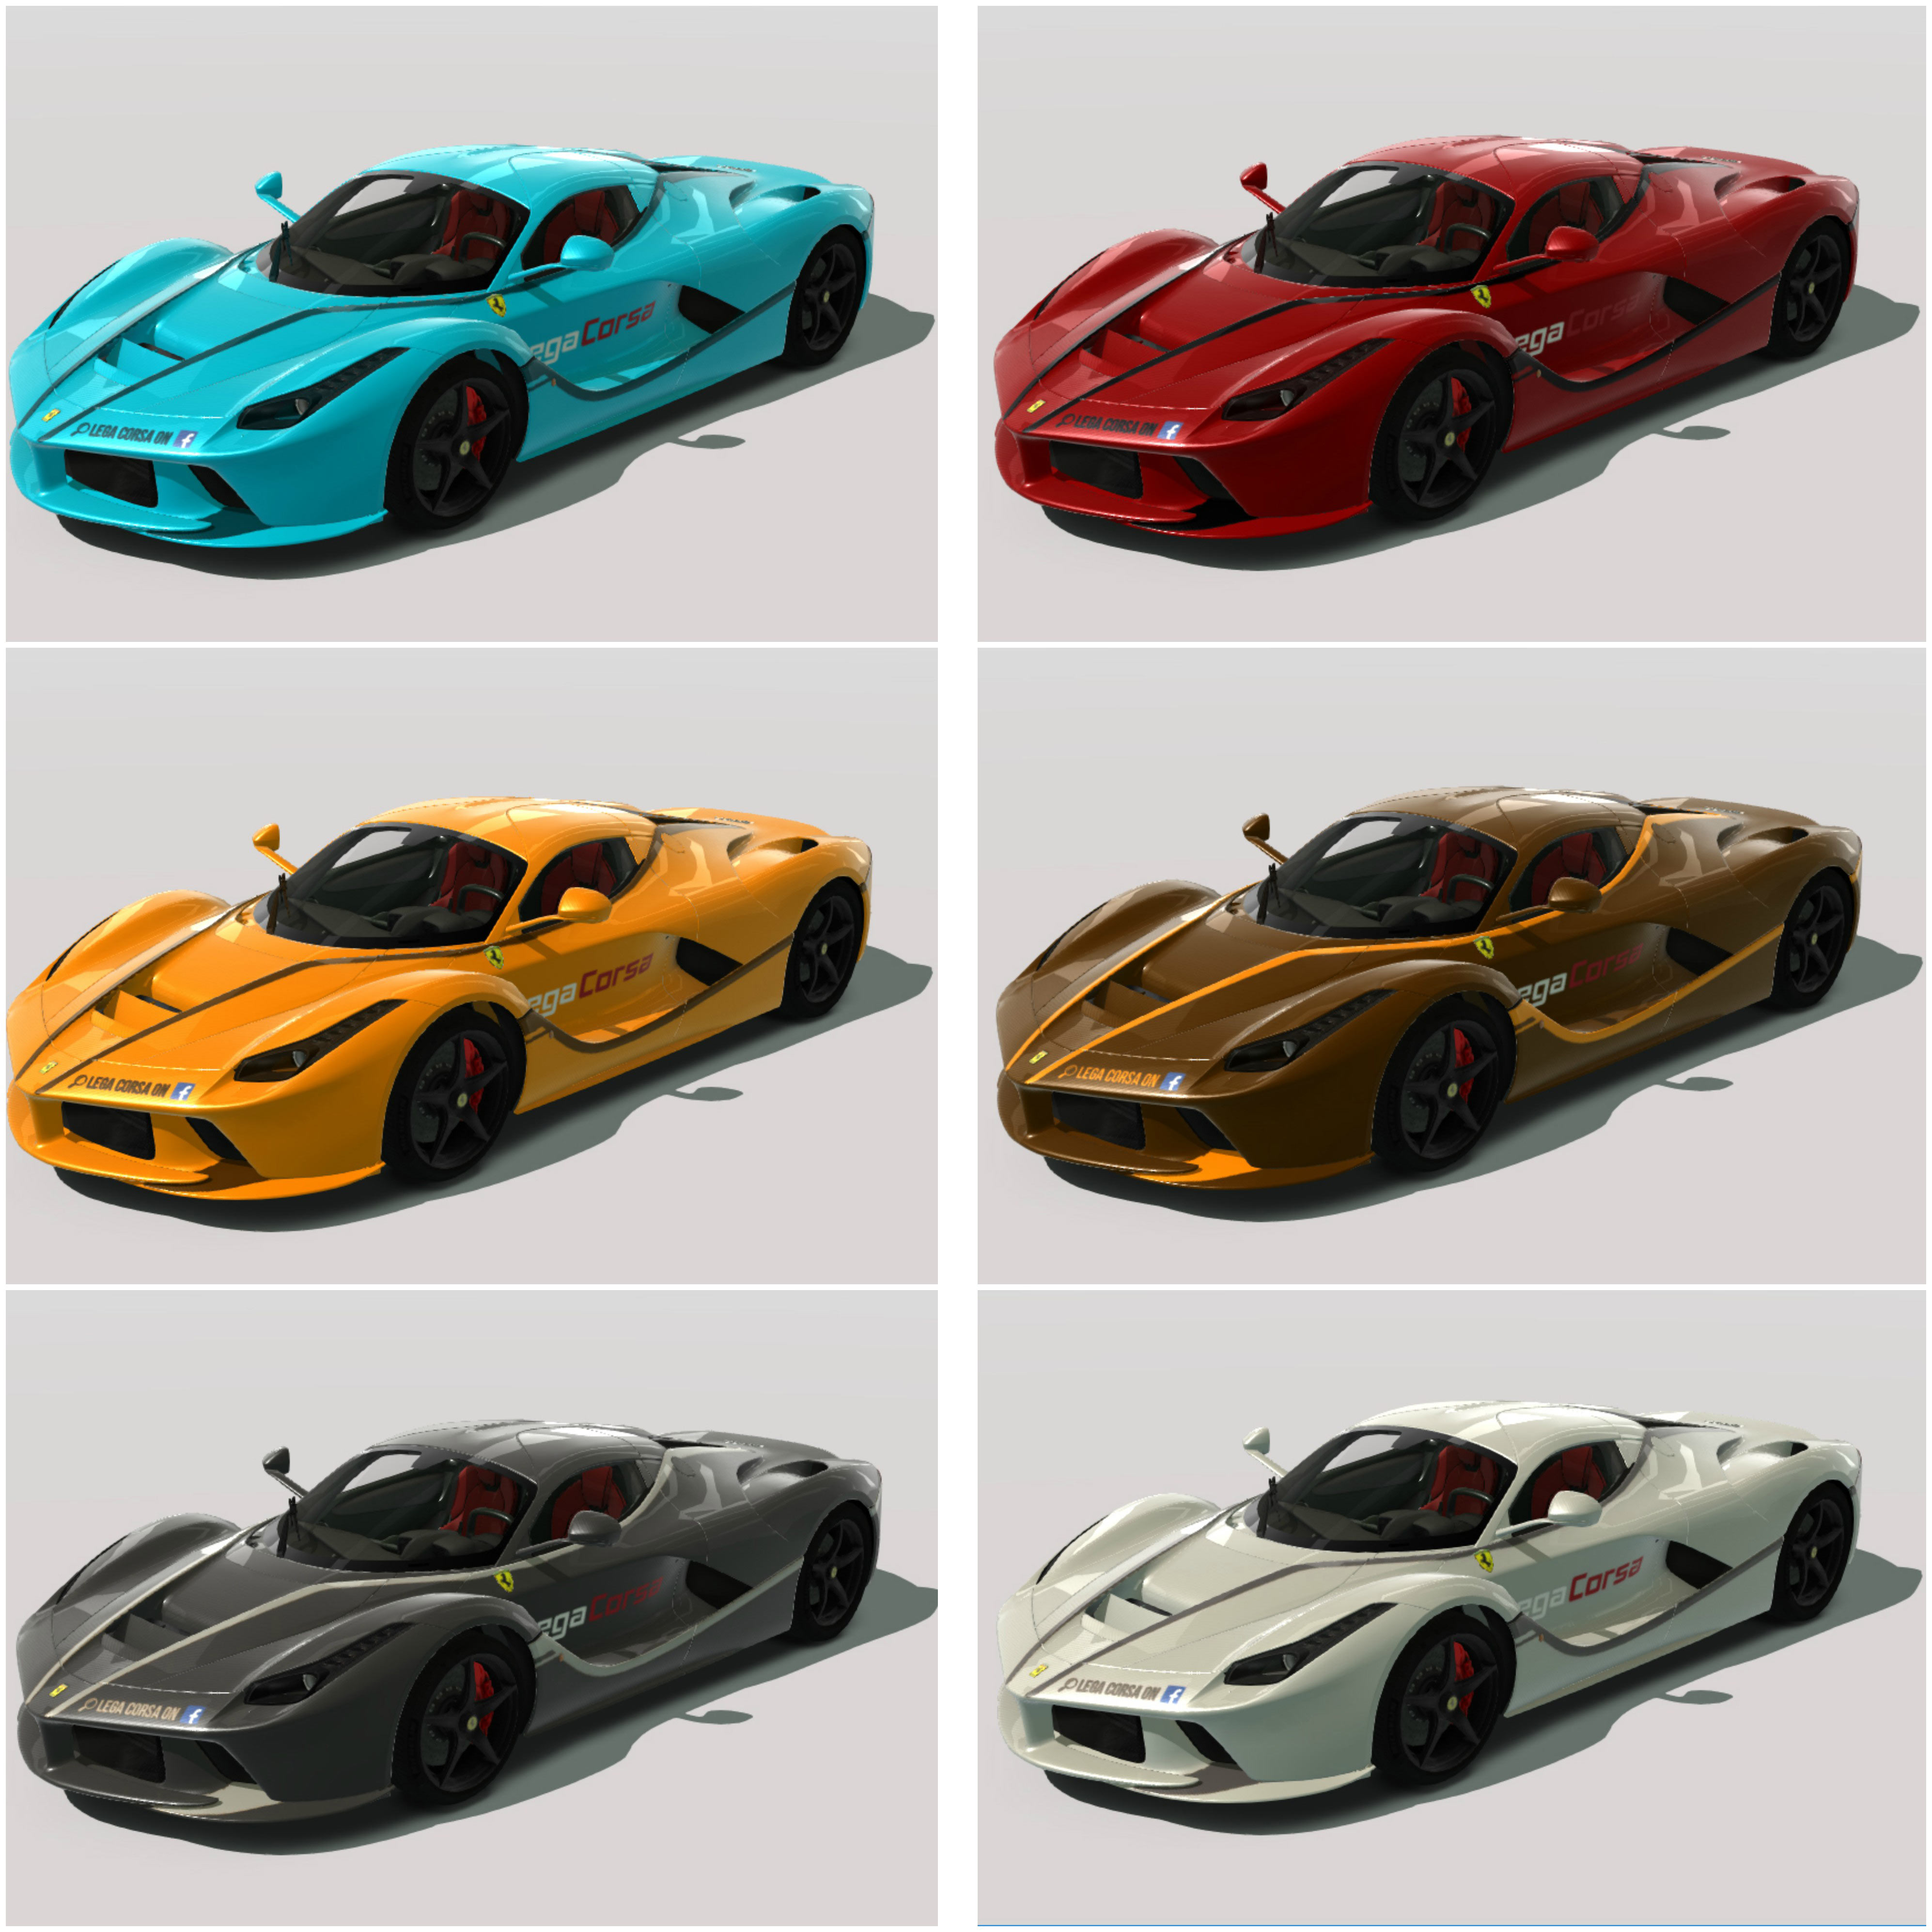 laferrari-collage-2w.jpg